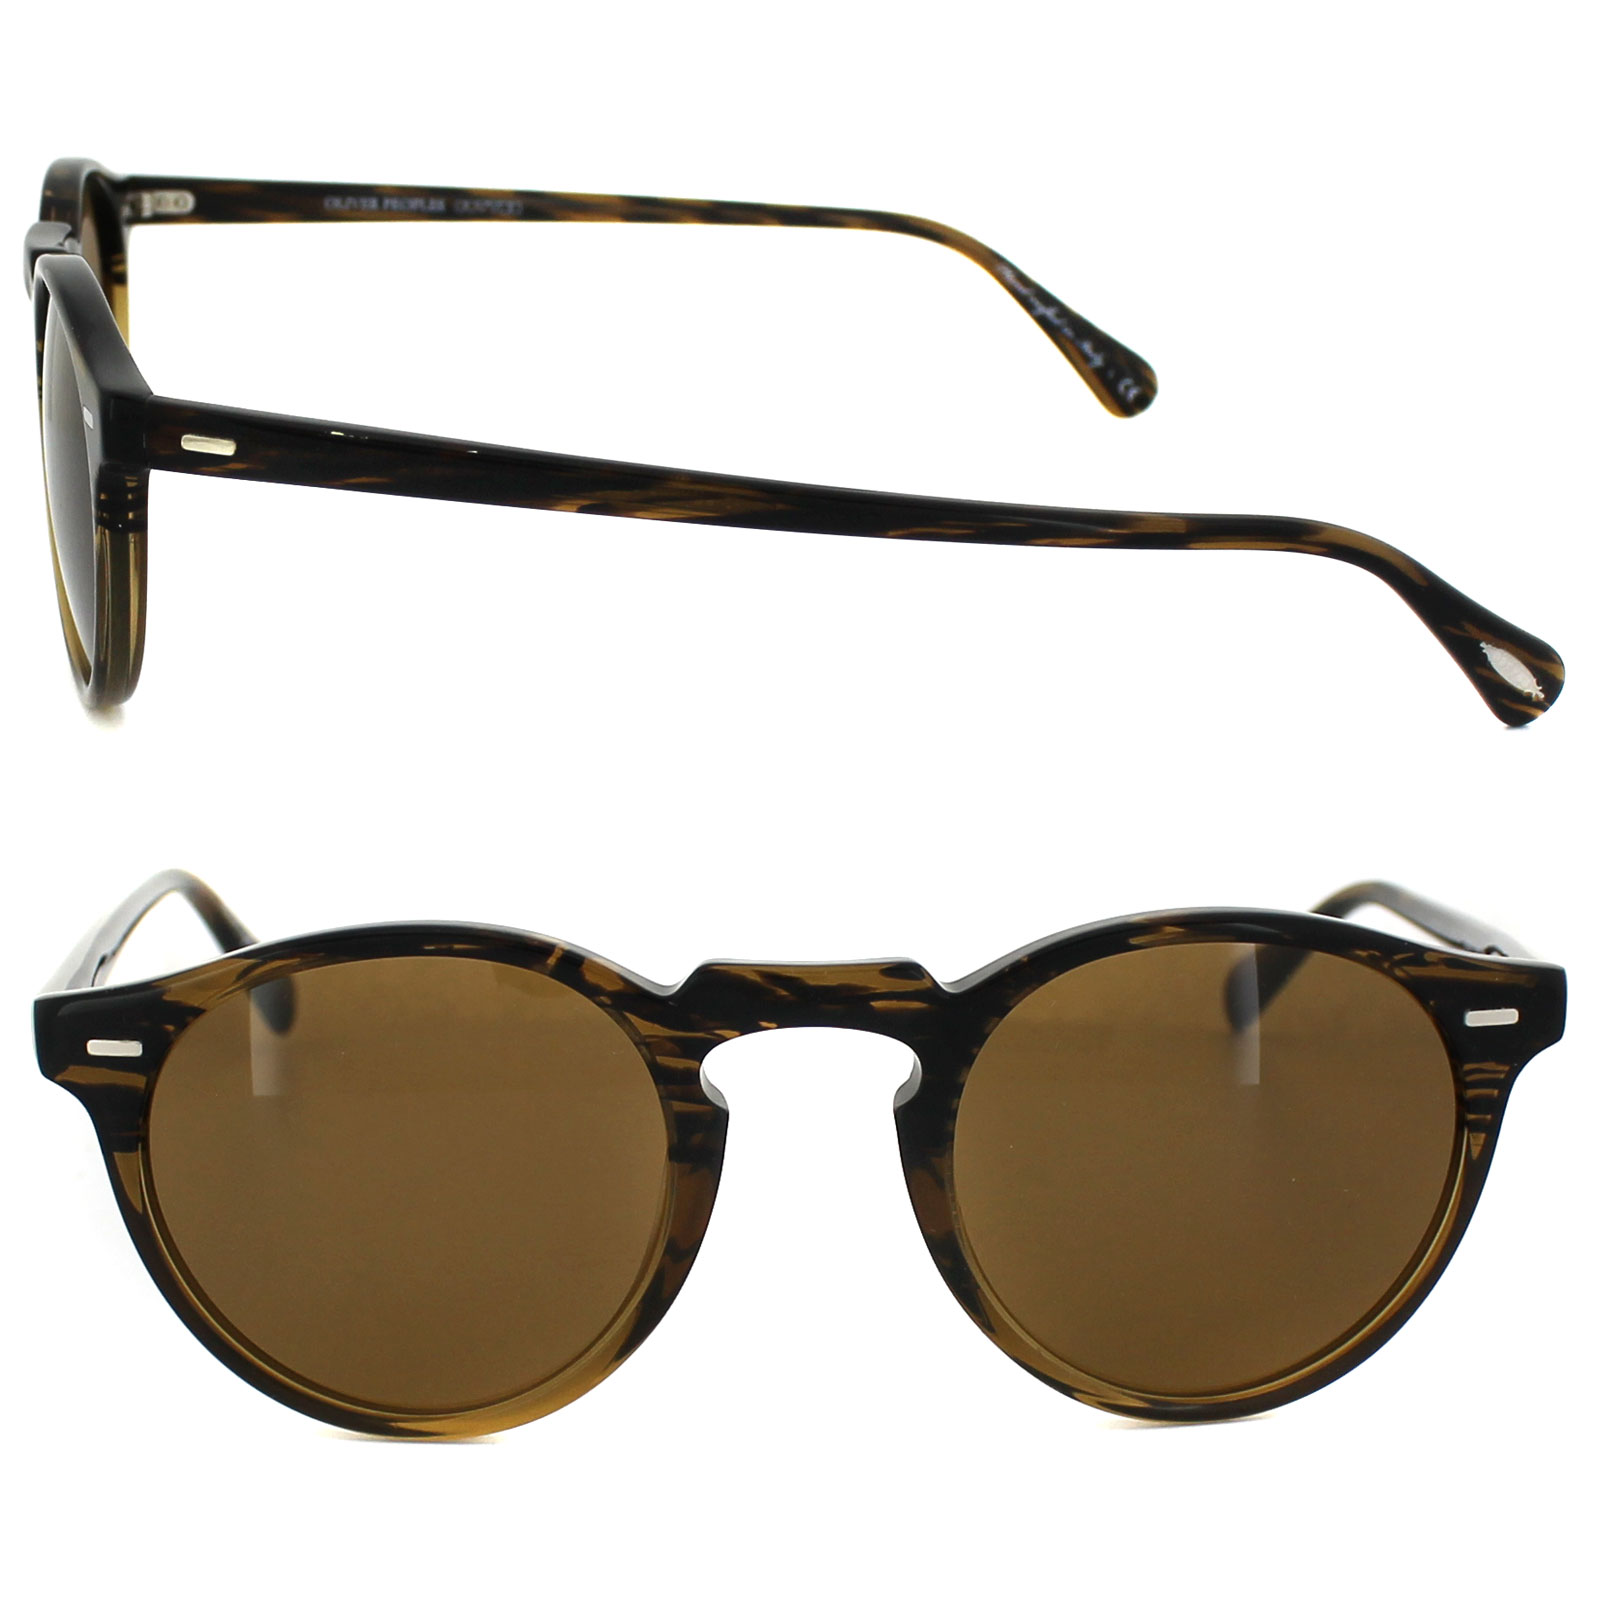 094b5a6ee77 Cheap Oliver Peoples Gregory Peck 5217 Sunglasses - Discounted ...